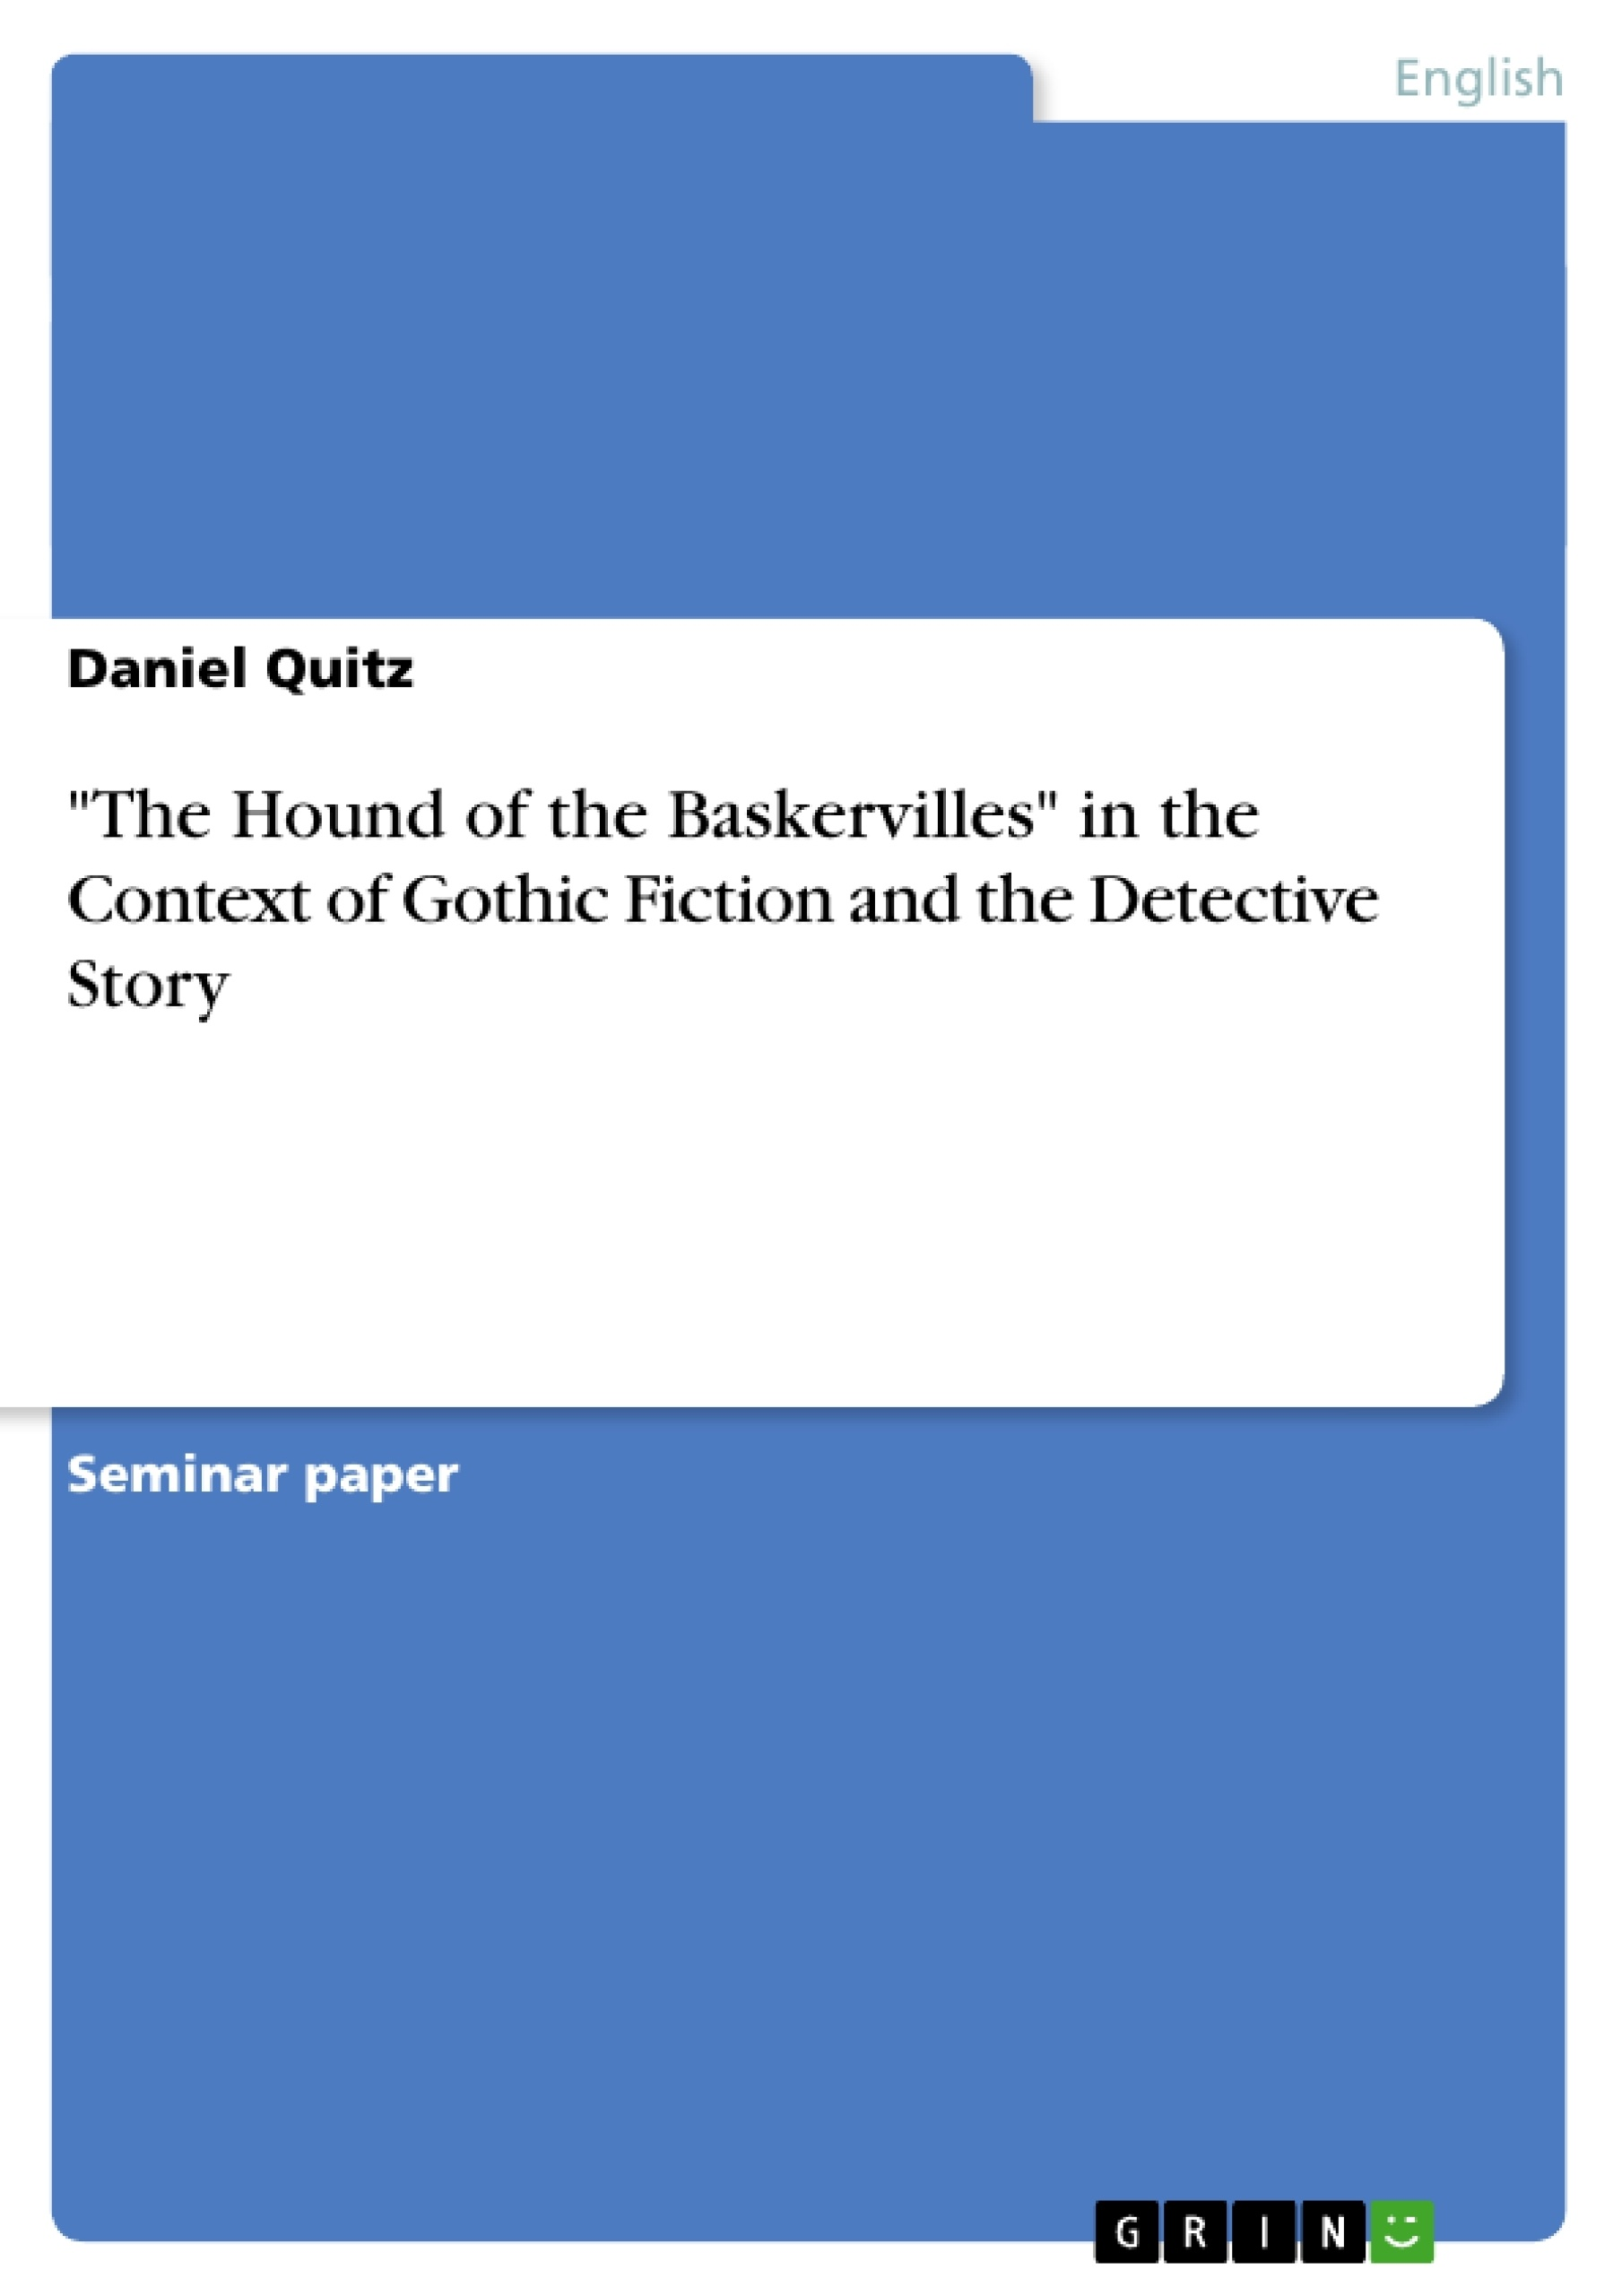 """Title: """"The Hound of the Baskervilles"""" in the Context of Gothic Fiction and the Detective Story"""